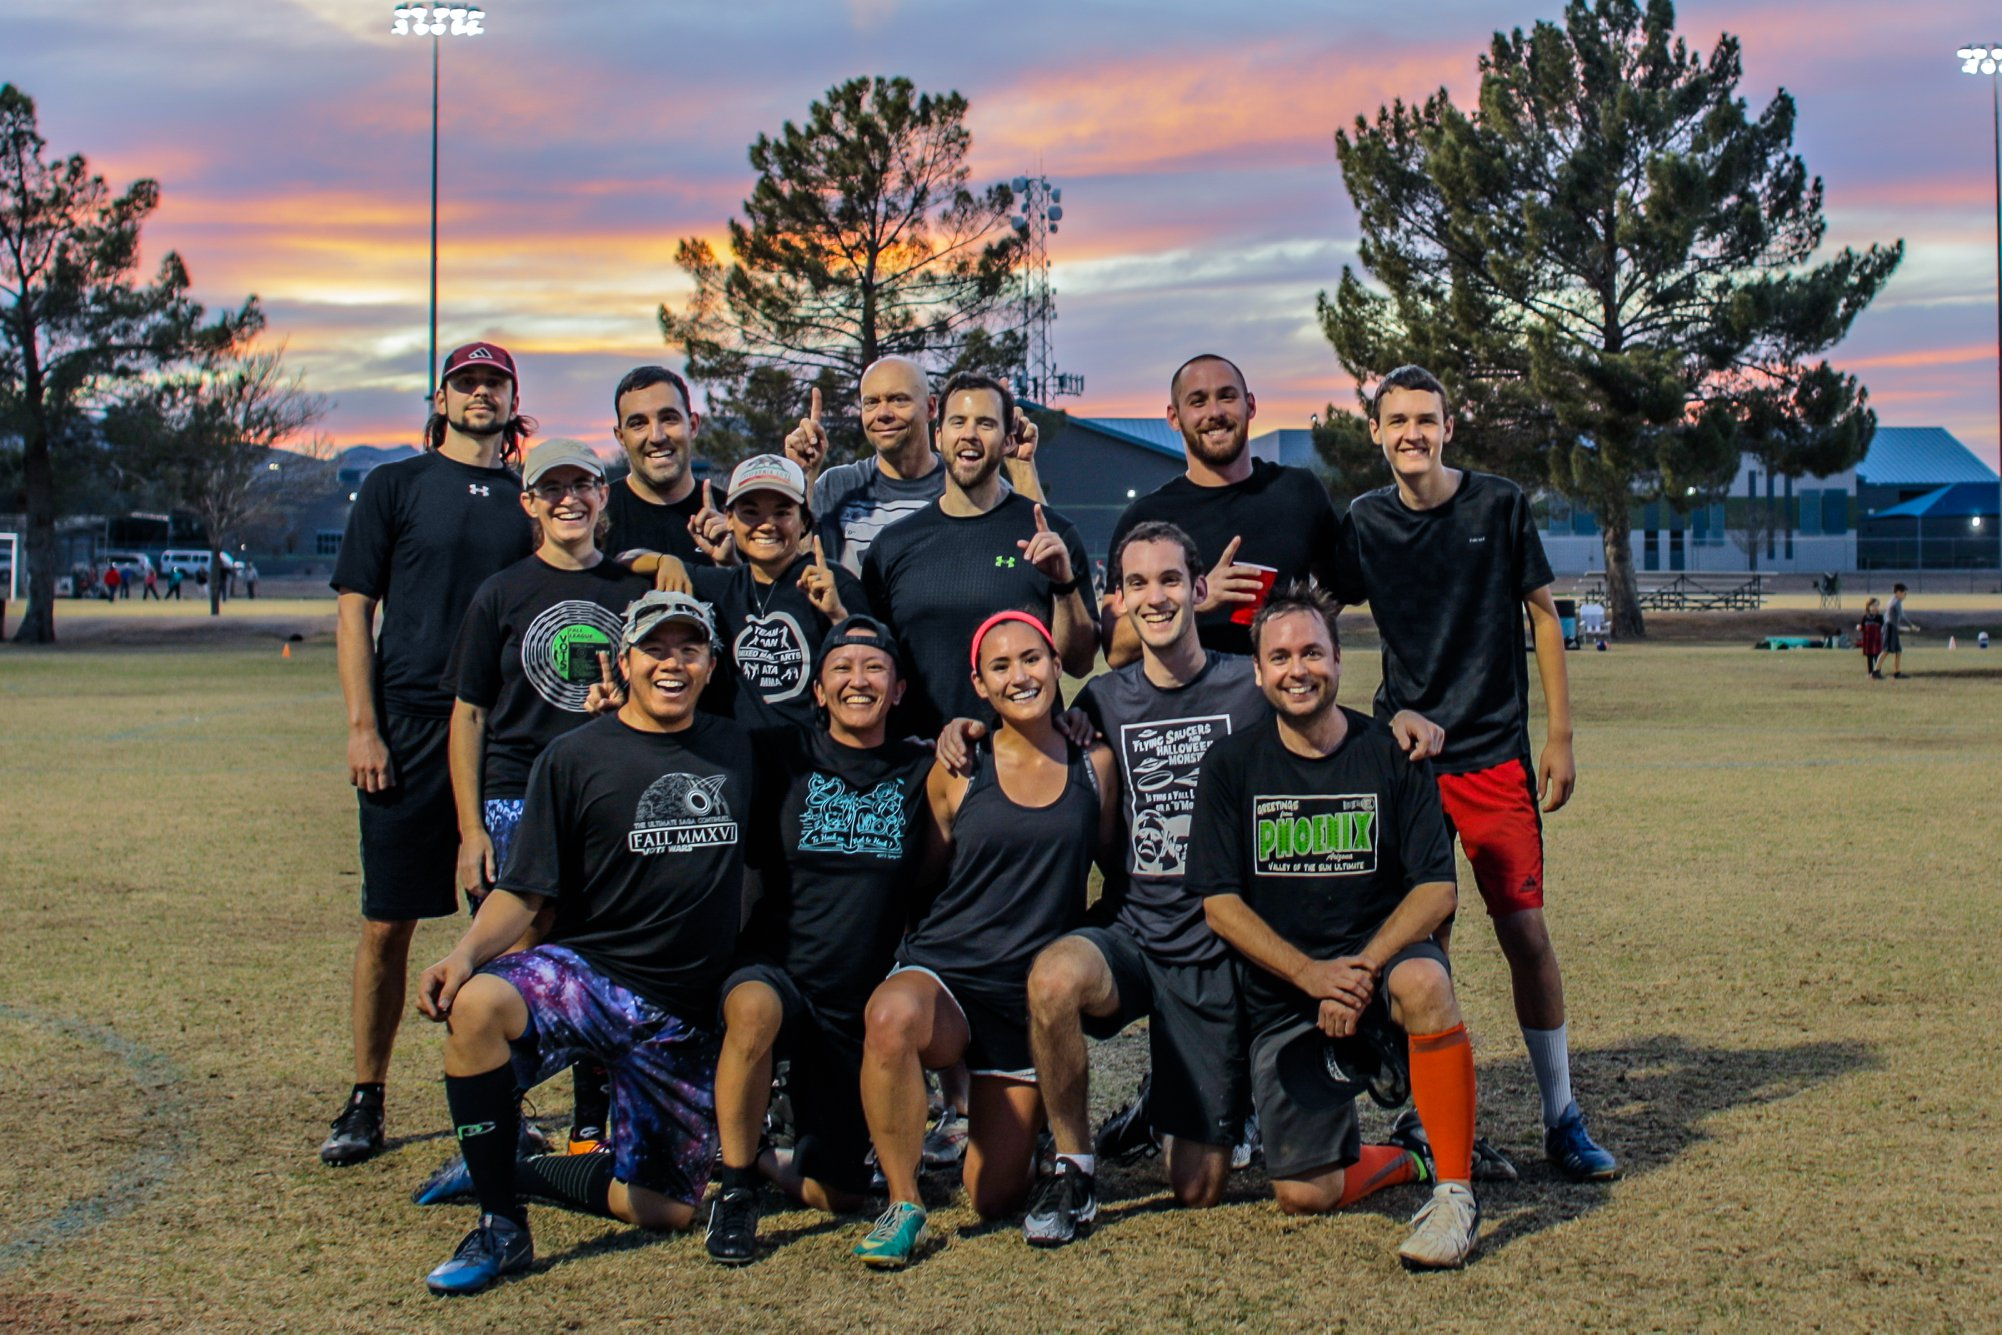 B League Champions, photo by Stephen So